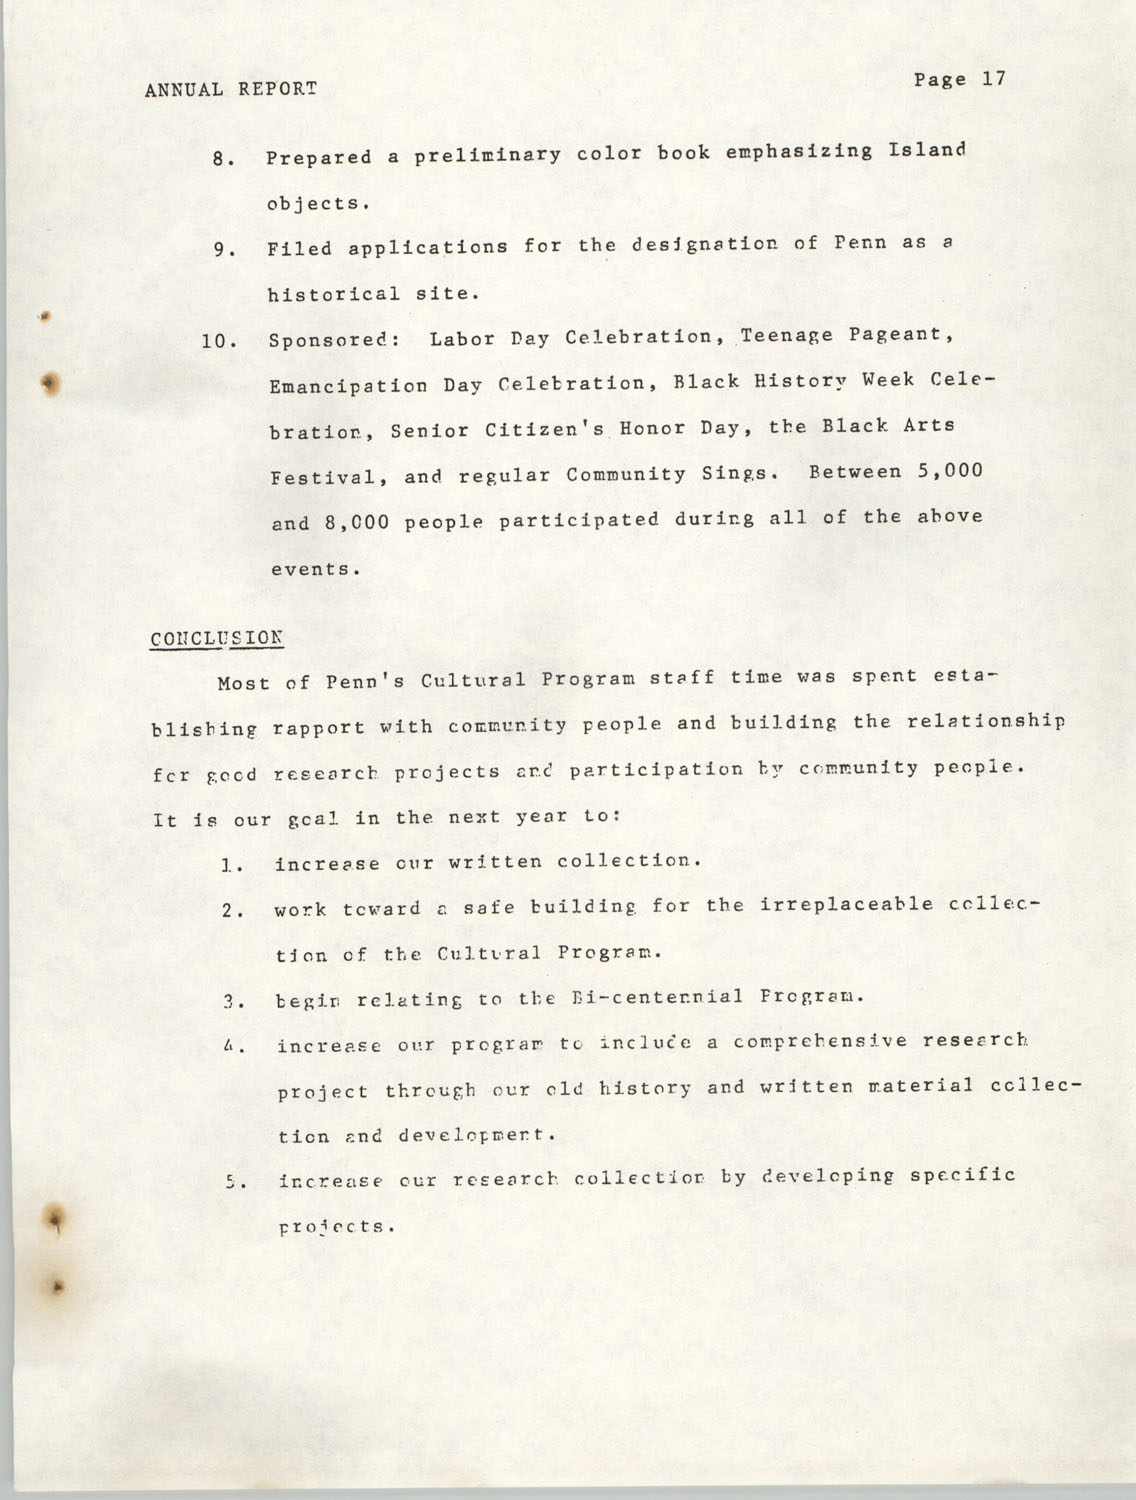 Annual Report, Penn Community Services, 1974, Page 17